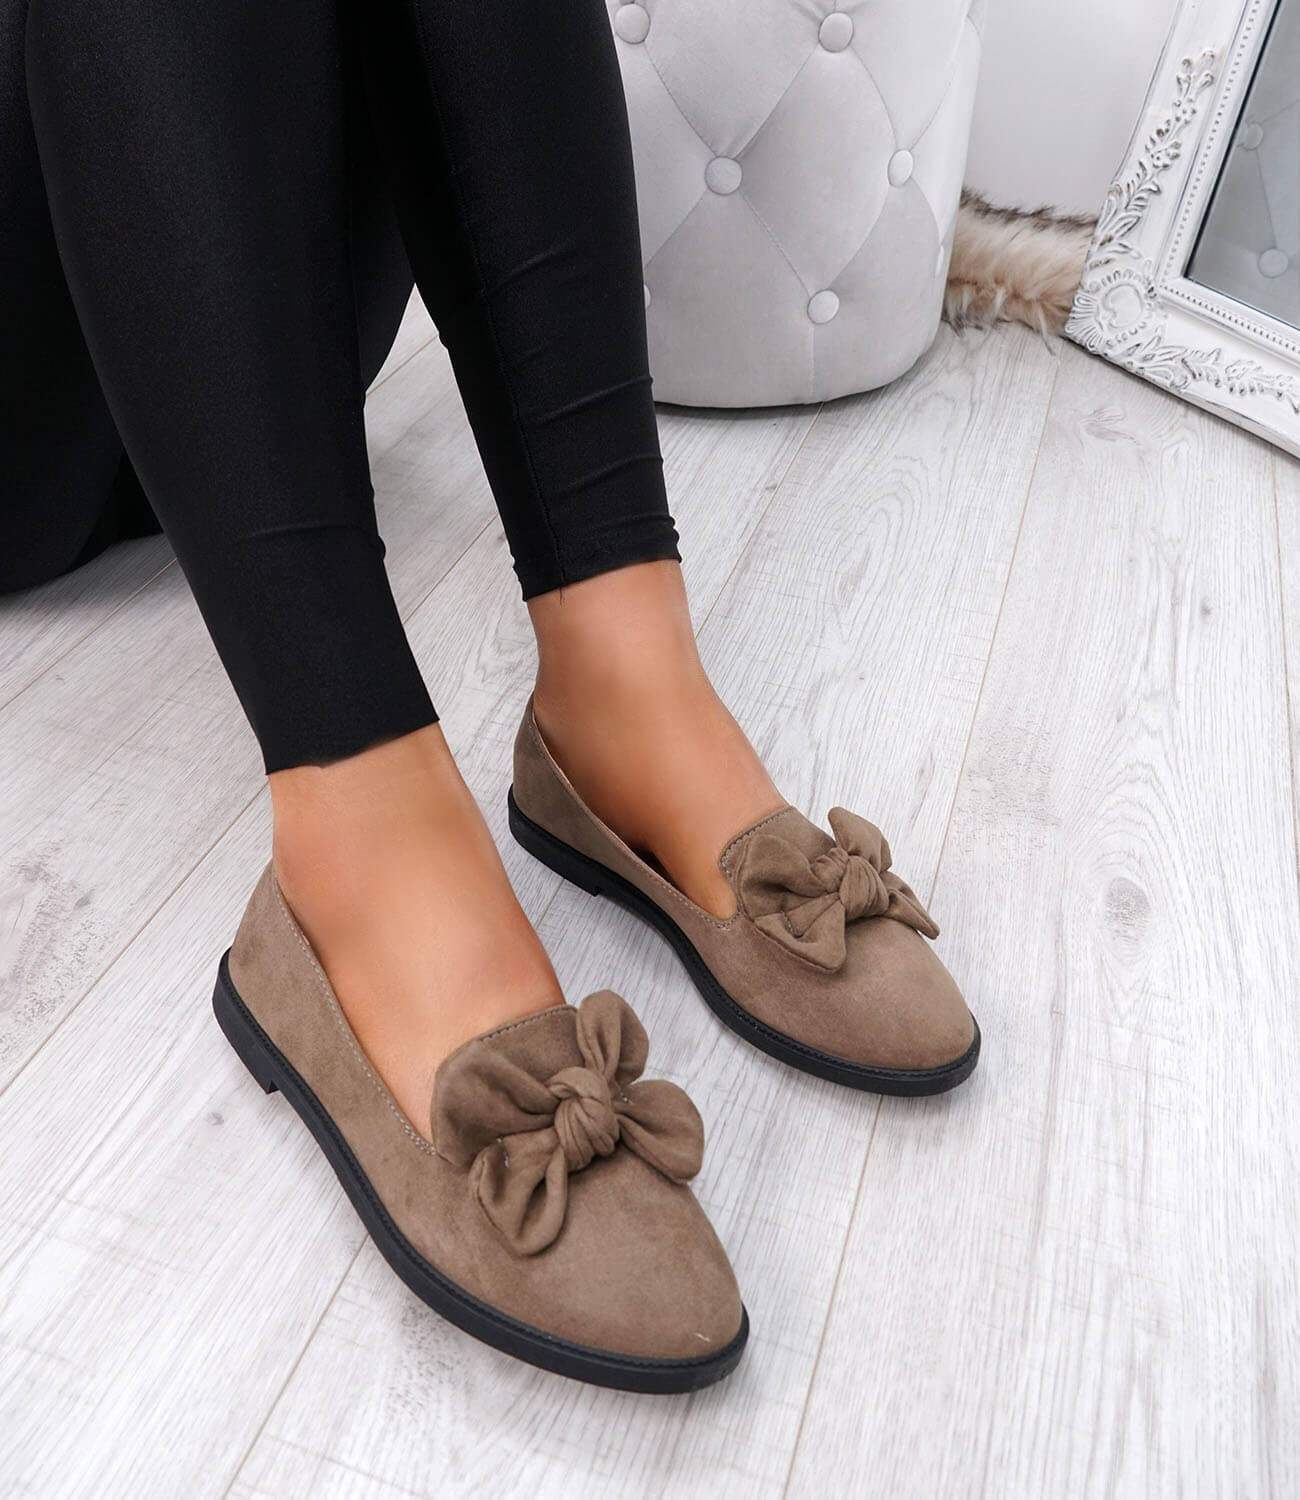 WOMENS-LADIES-BOW-BALLERINA-PUMPS-FLATS-SLIP-ON-BALLET-CASUAL-WORK-SHOES-SIZE thumbnail 29